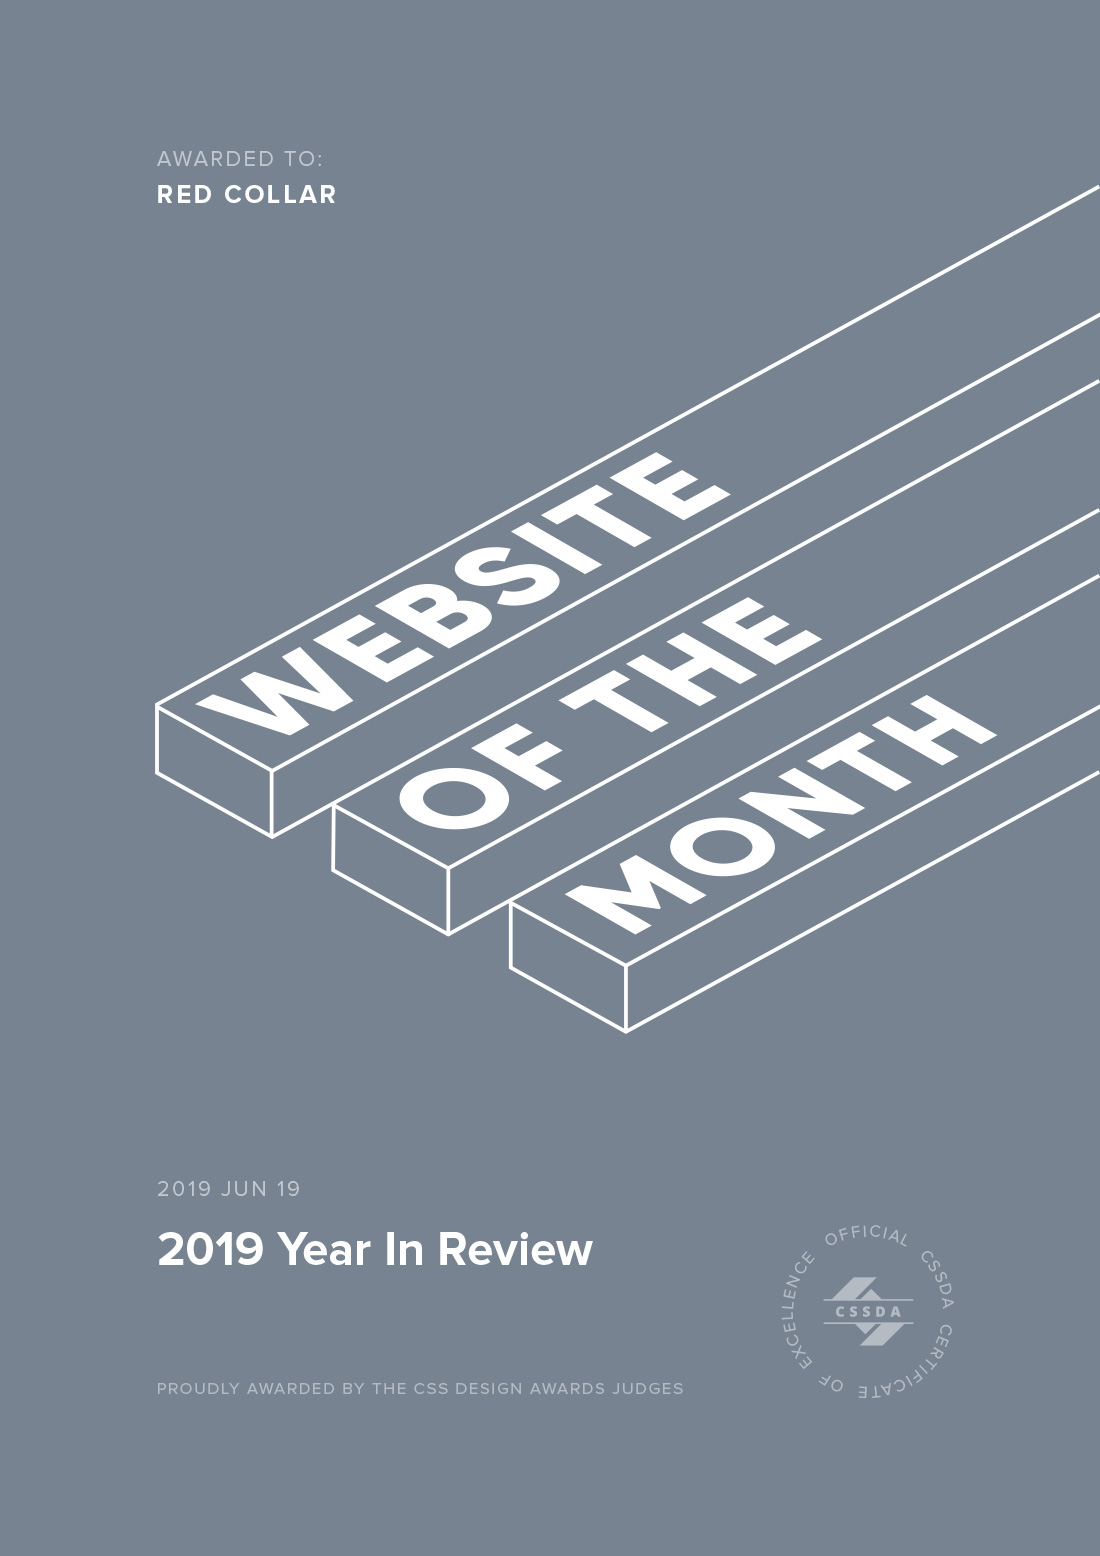 Website of the Month Award Certificate